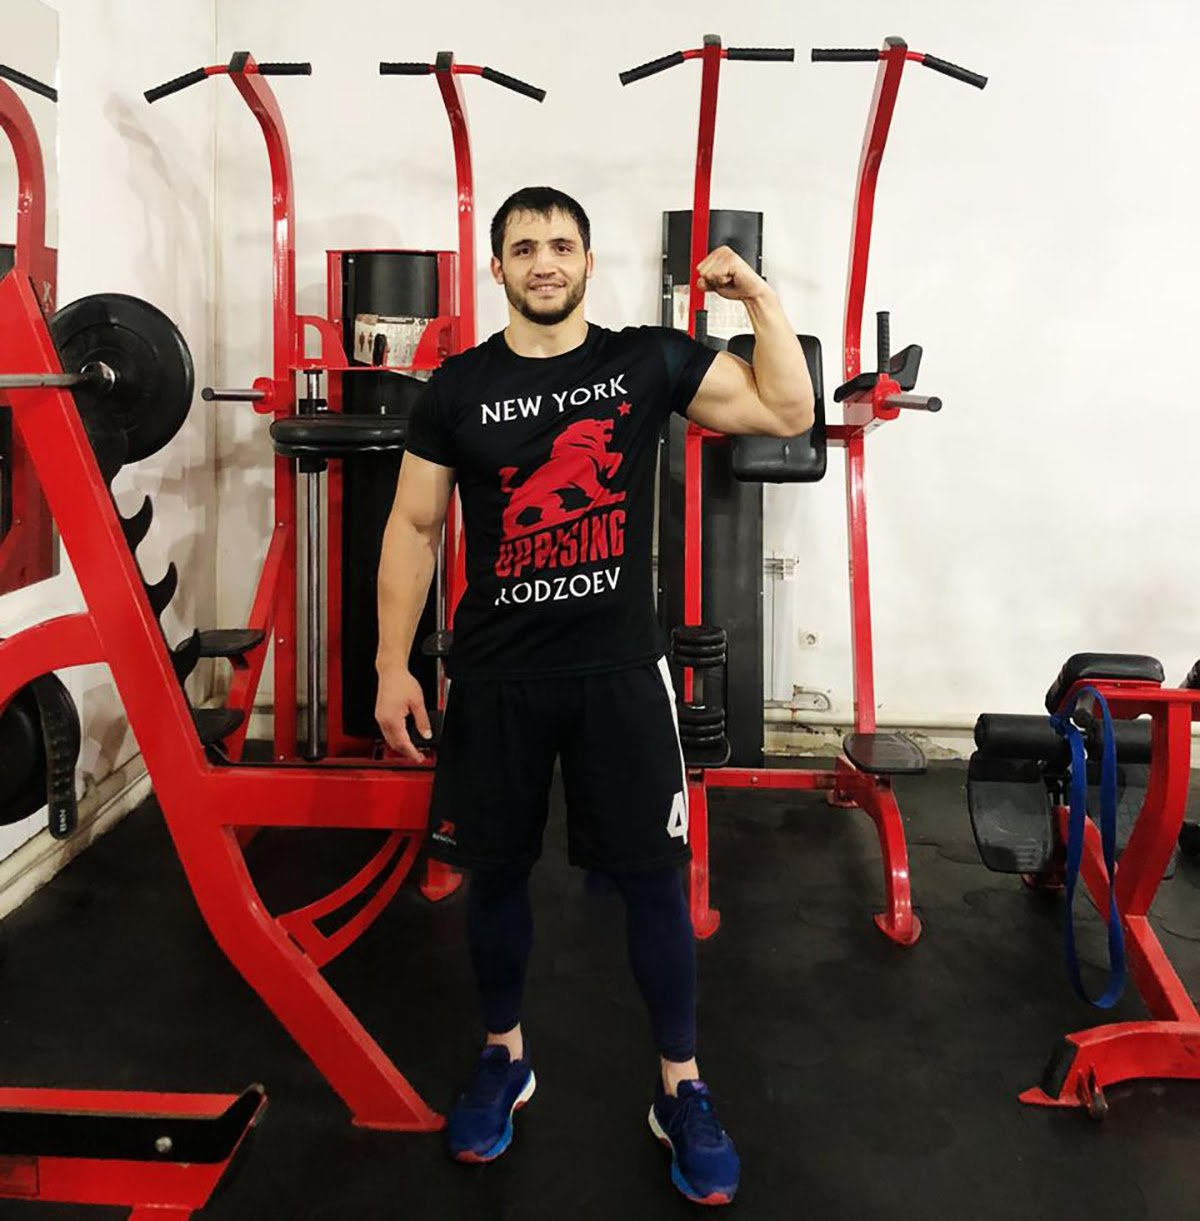 Dmitry Sukhotskiy, Rashid Kodzoev - Uprising Promotions cruiserweight Rashid Kodzoev (7-0, 4 KOs) will be returning to action this Tuesday at Vegas City Hall in Moscow, Russia. Standing opposite of him will be Dmitry Sukhotskiy (23-8, 16 KOs), who is a durable veteran of 31 bouts.